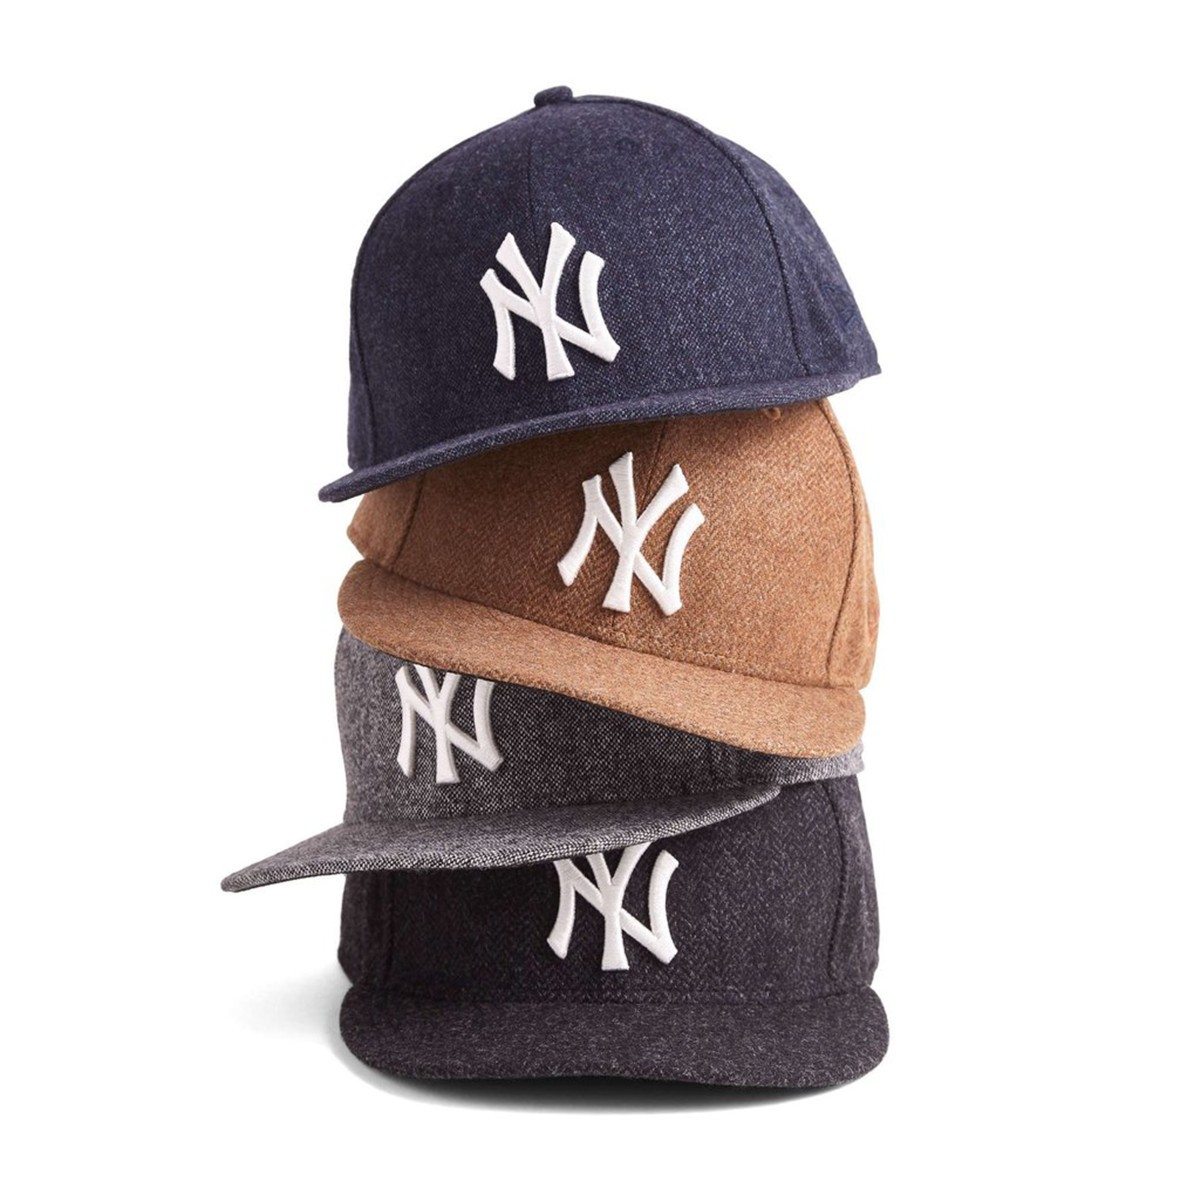 Todd Snyder Yankees Caps